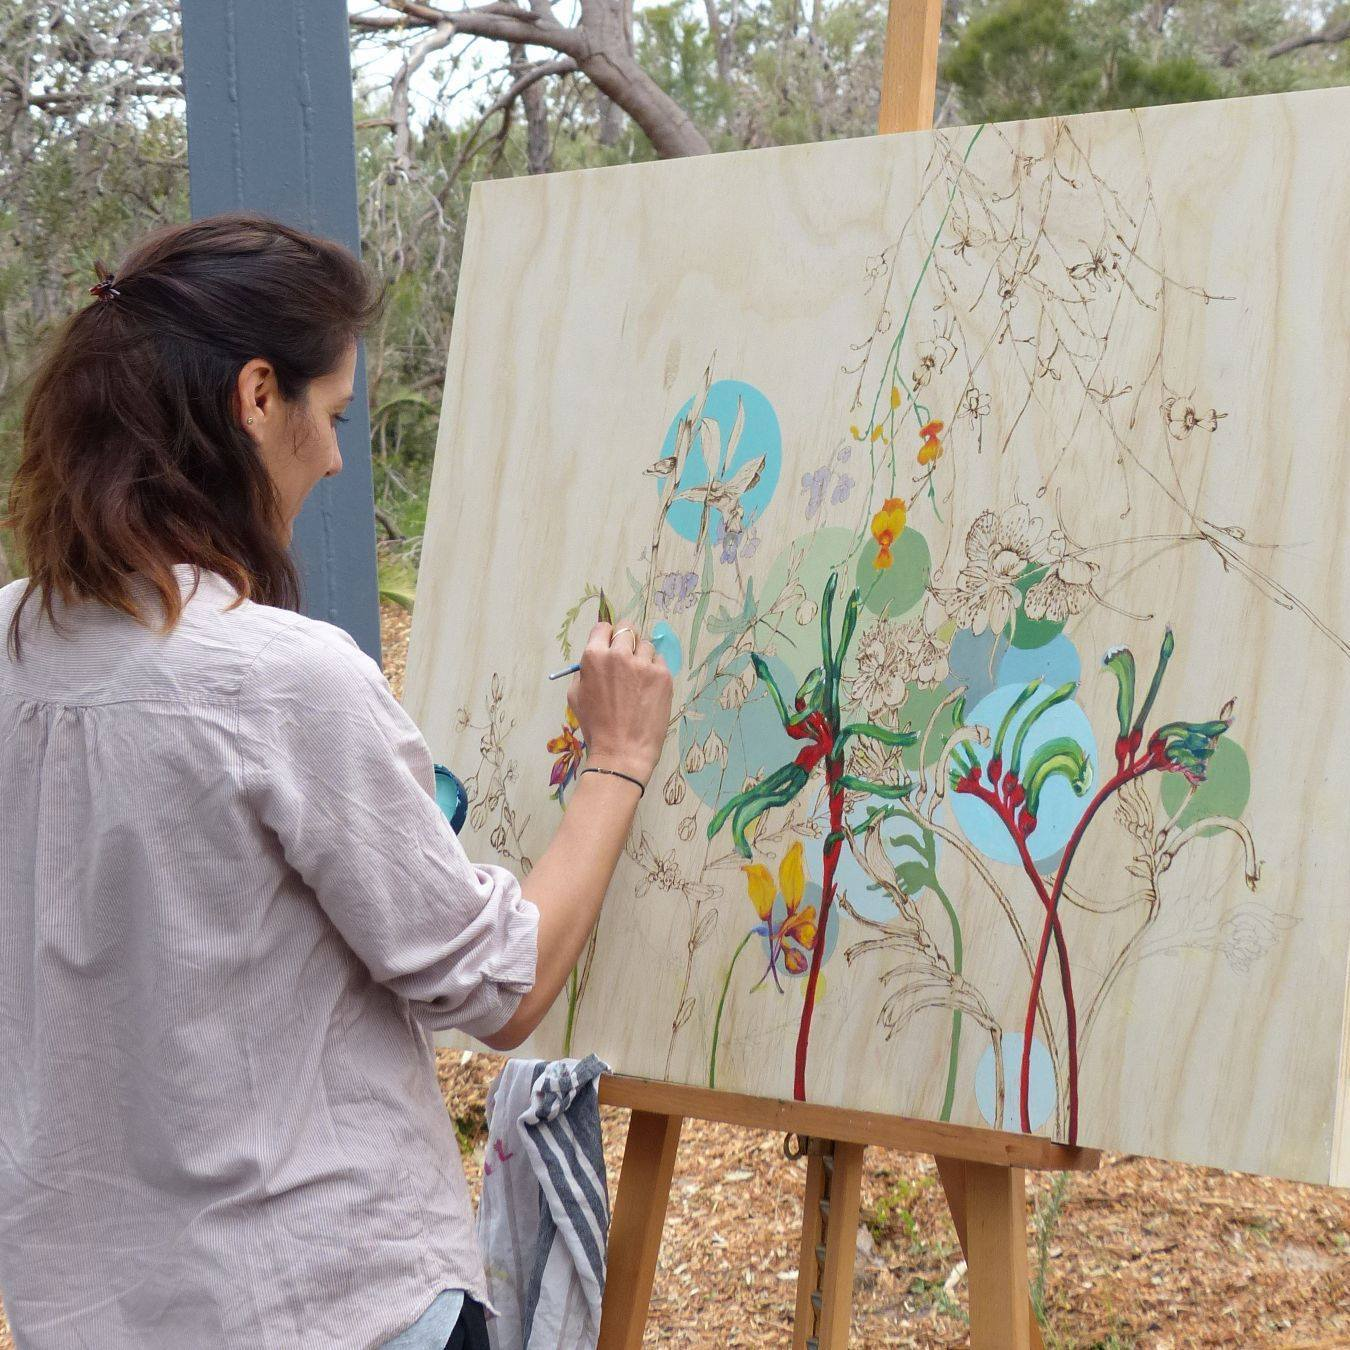 Filled with hope and possibilities: The art of Vanessa Liebenberg - WILDFLOWER SOCIETY OF WESTERN AUSTRALIA | FEBRUARY 2017